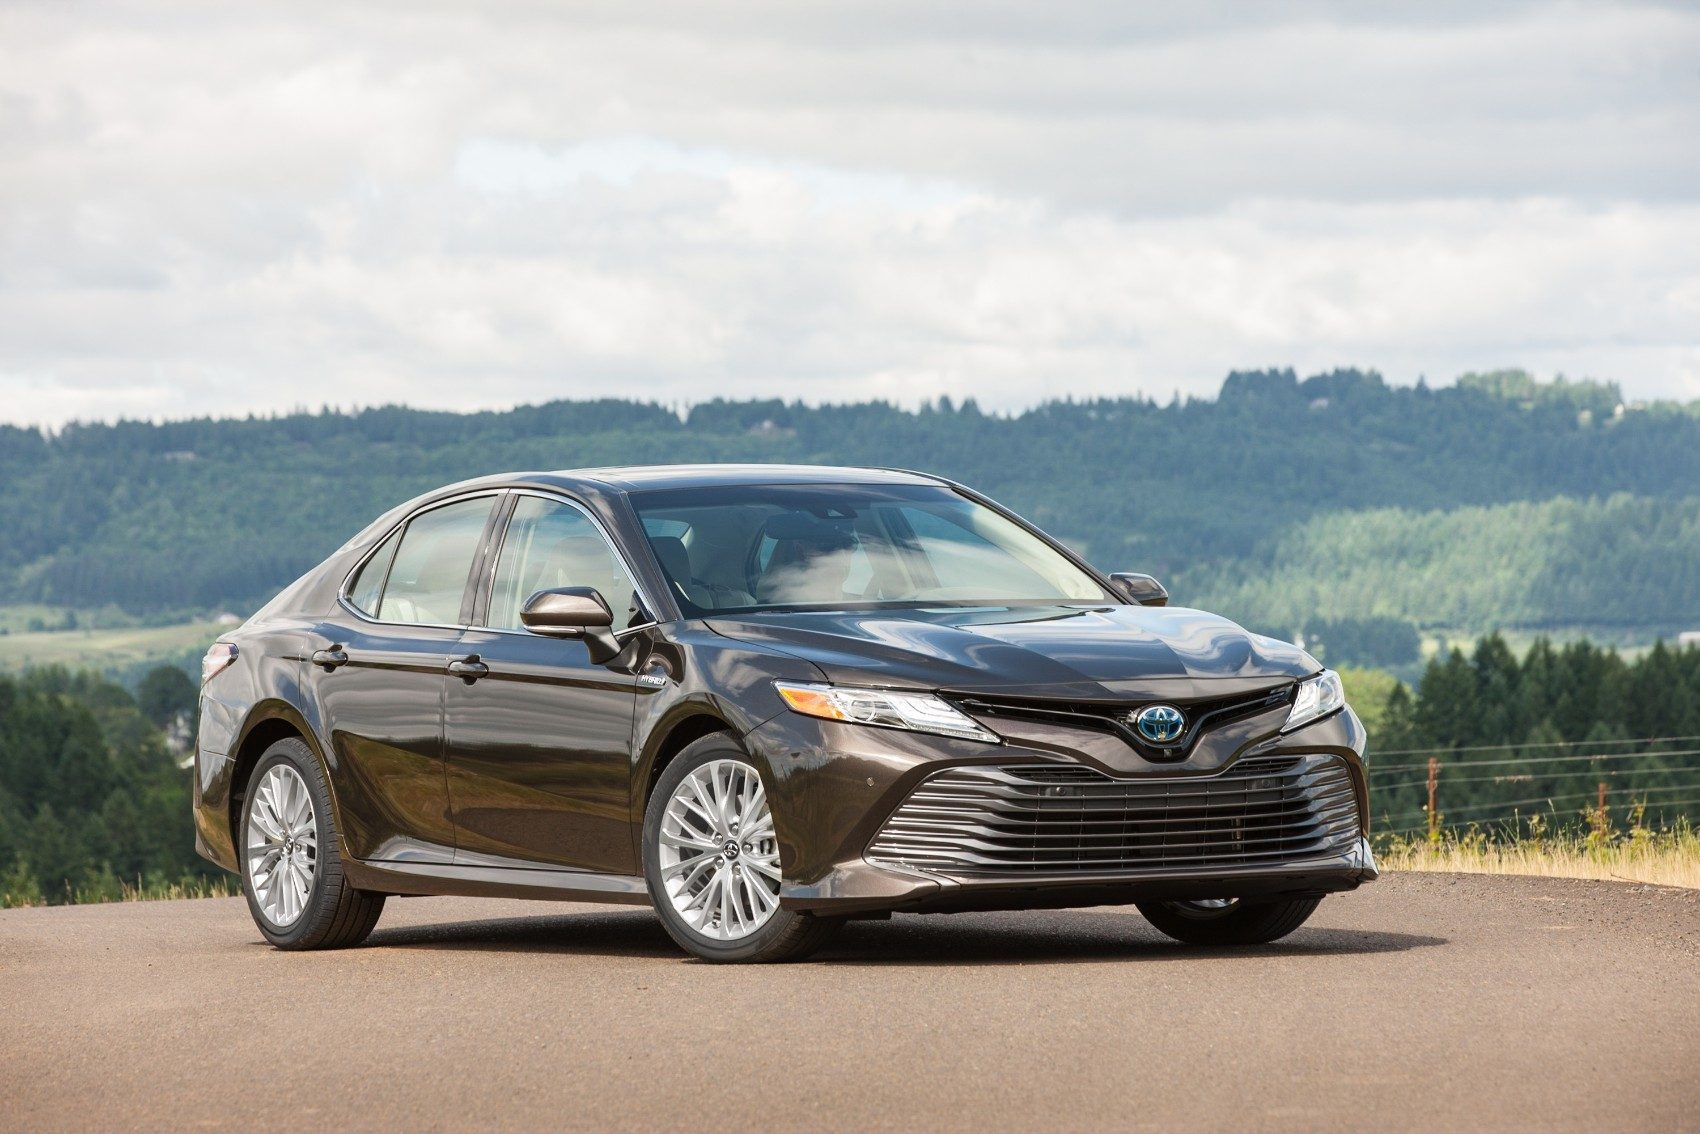 Headlights 415 And Navigation 1 760 Total Msrp Including Destination 38 215 By Comparison The 2019 Toyota Camry Hybrid Starts At 28 150